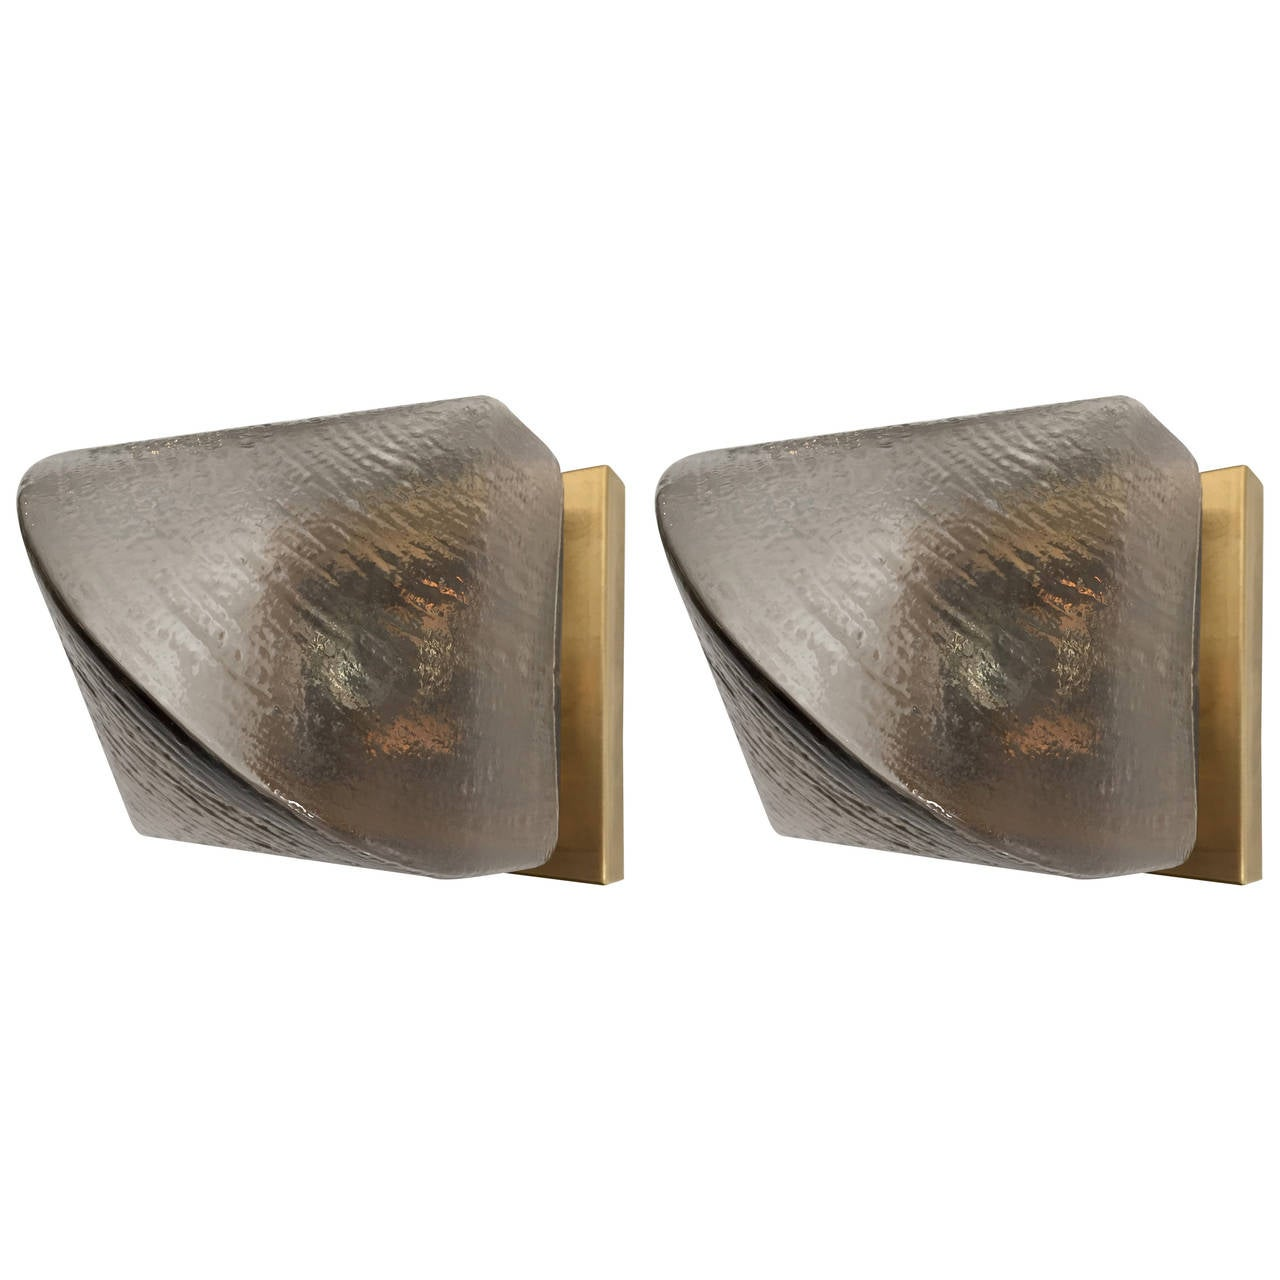 Pair of Peill and Putzler Glass, 1970s Sconces